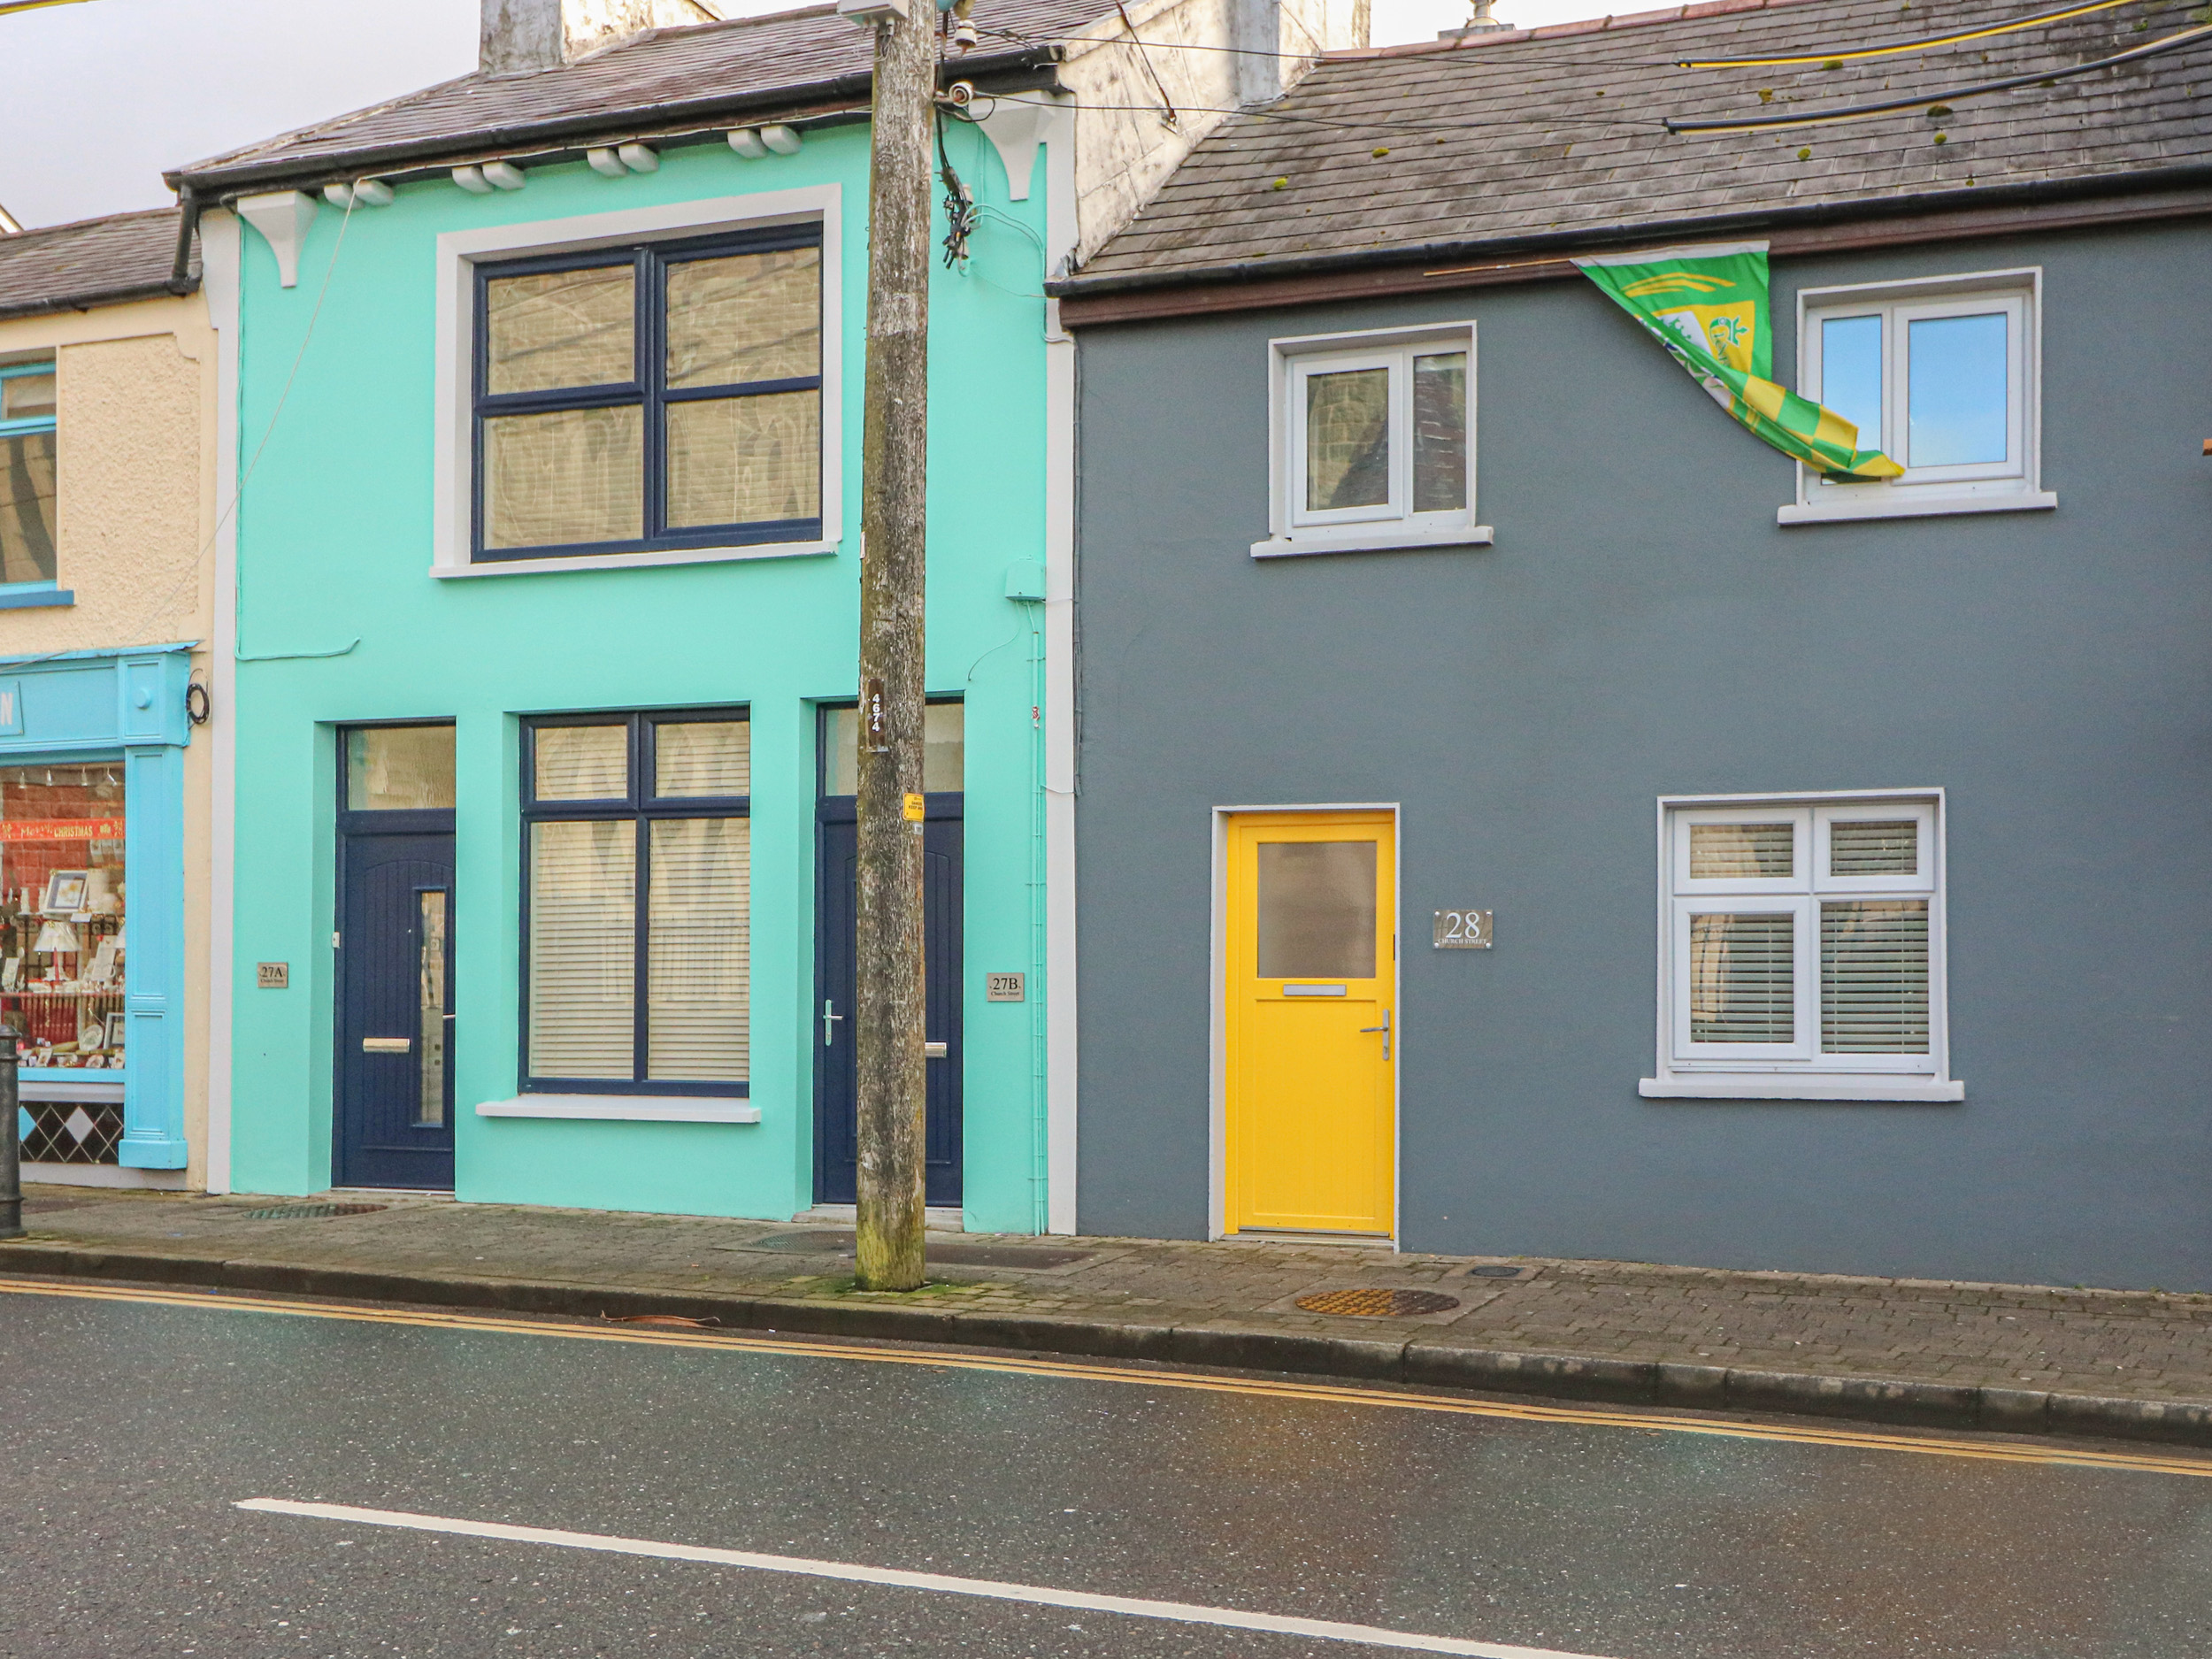 28 Church Street, County Kerry